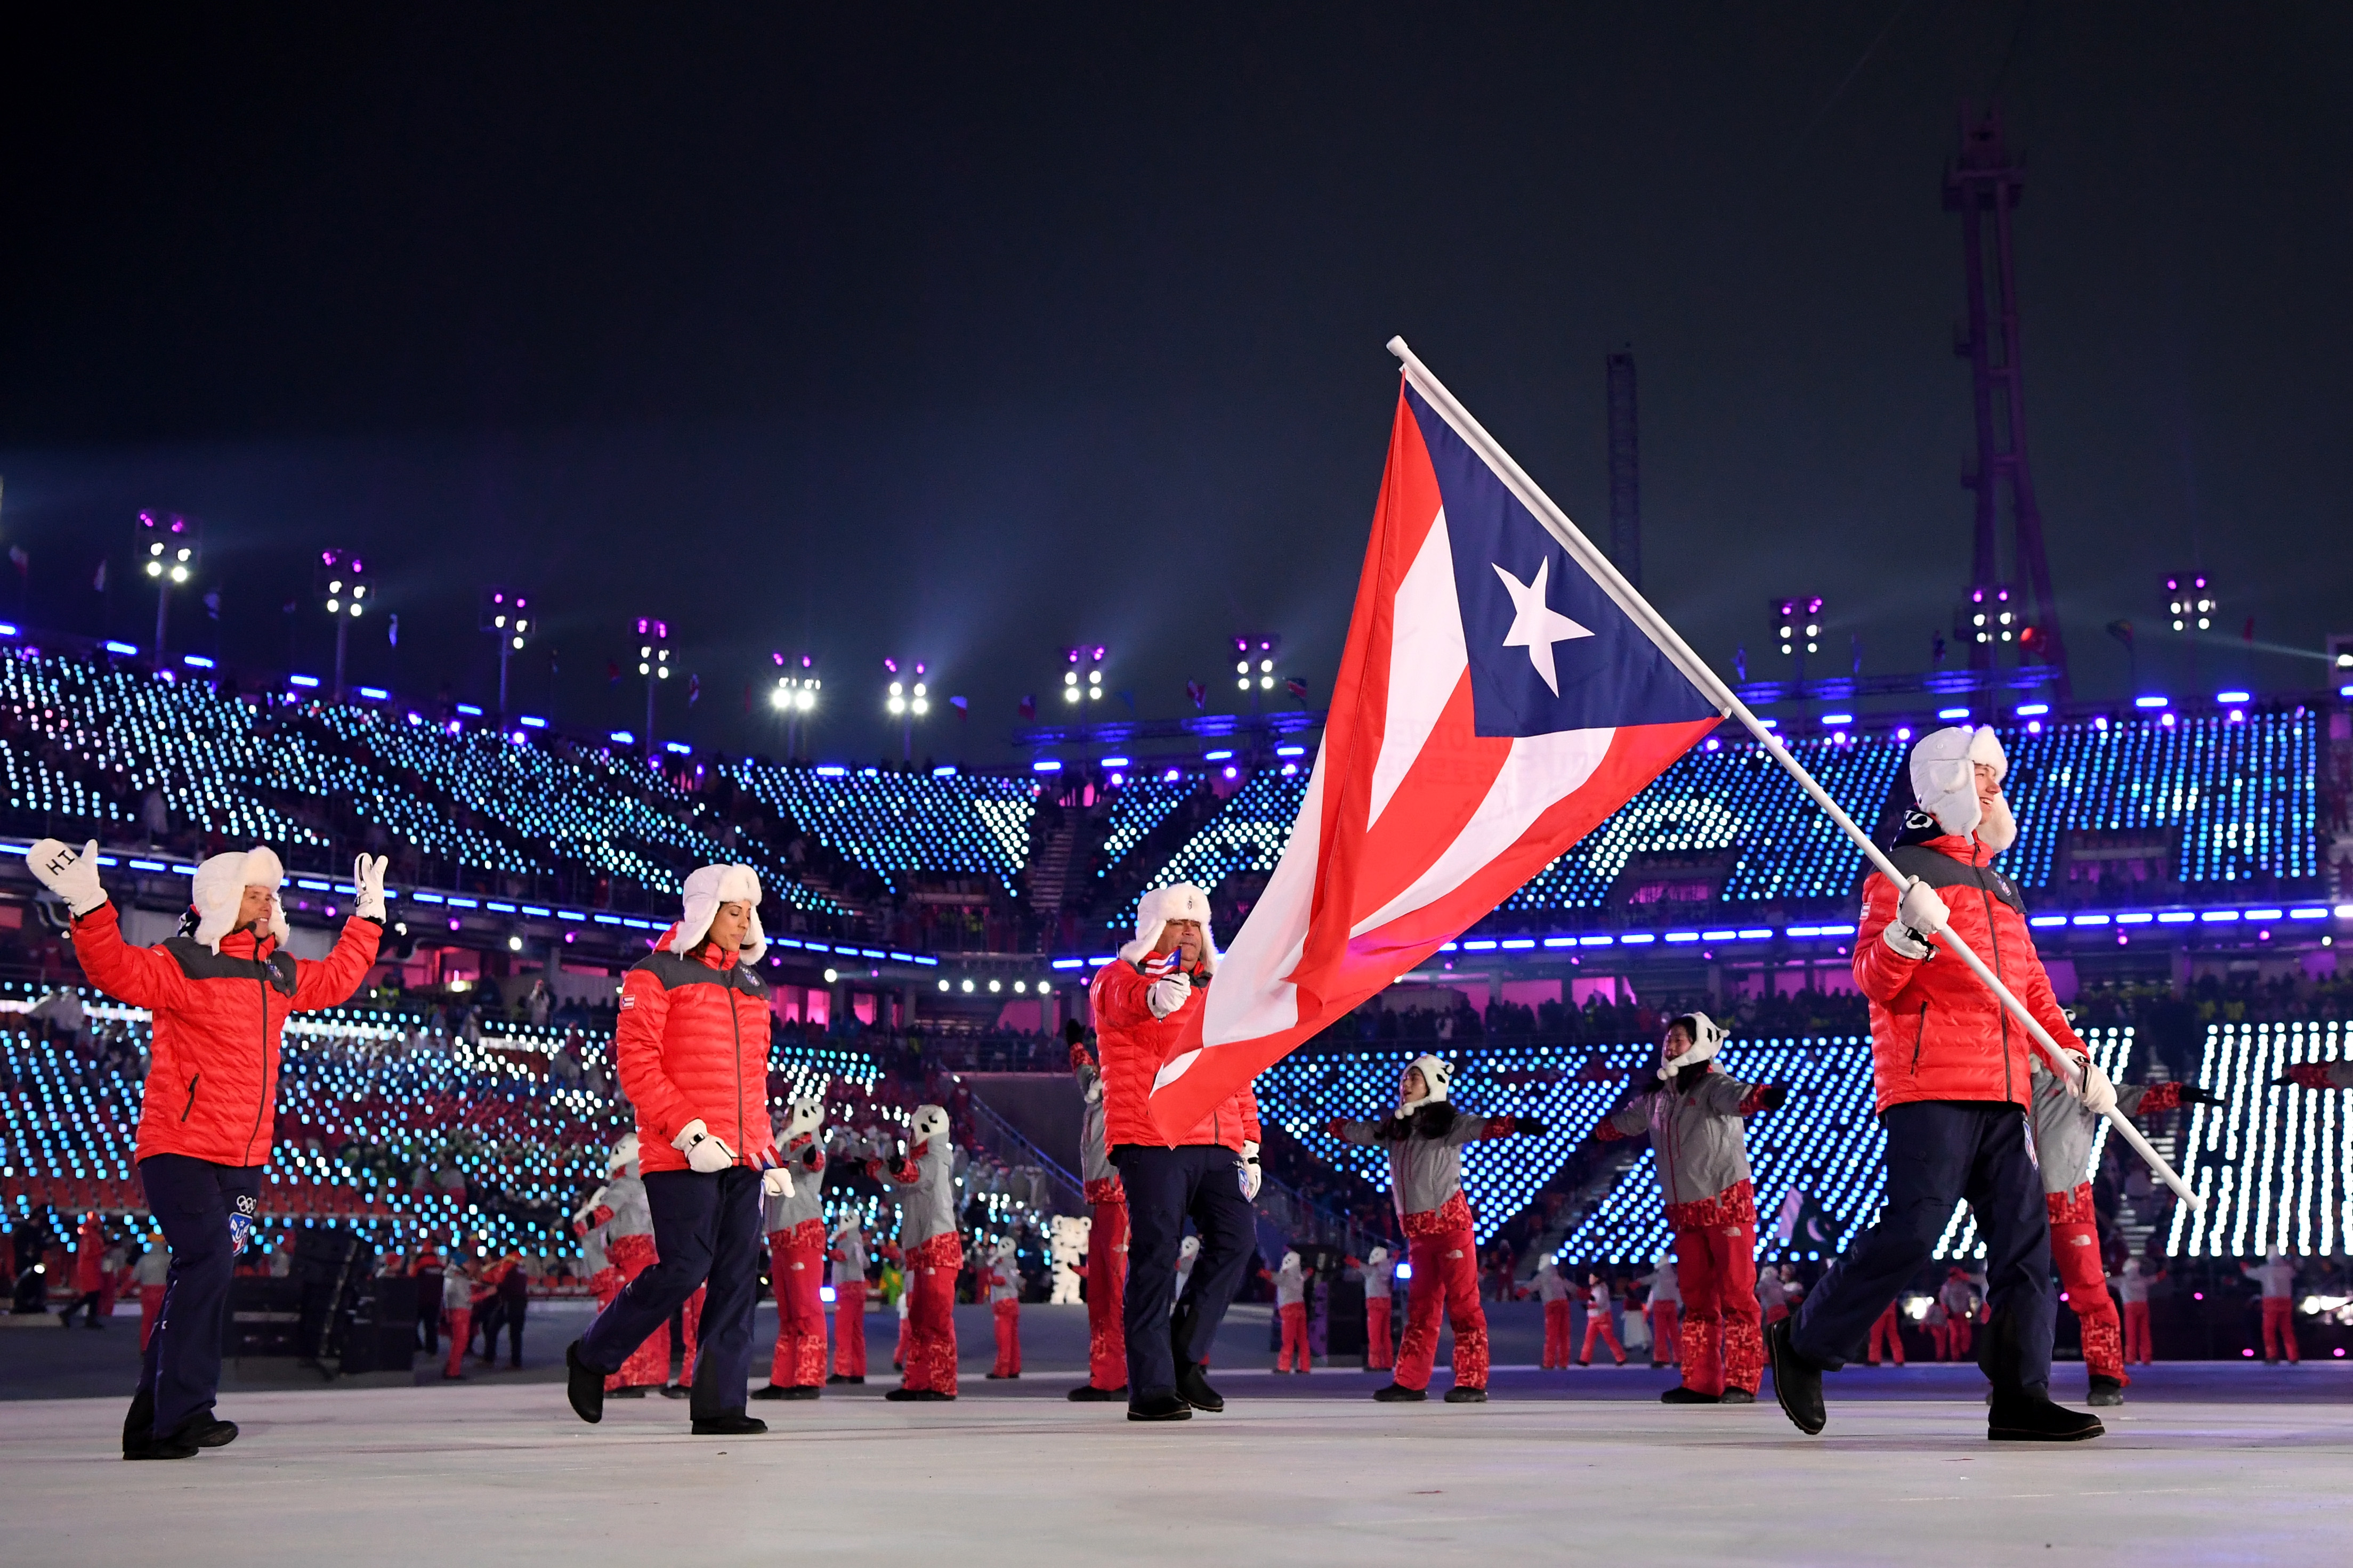 Flag bearer Charles Flaherty of Puerto Rico and teammates arrive at the stadium during the Opening Ceremony of the PyeongChang 2018 Winter Olympic Games at PyeongChang Olympic Stadium on February 9, 2018 in Pyeongchang-gun, South Korea.